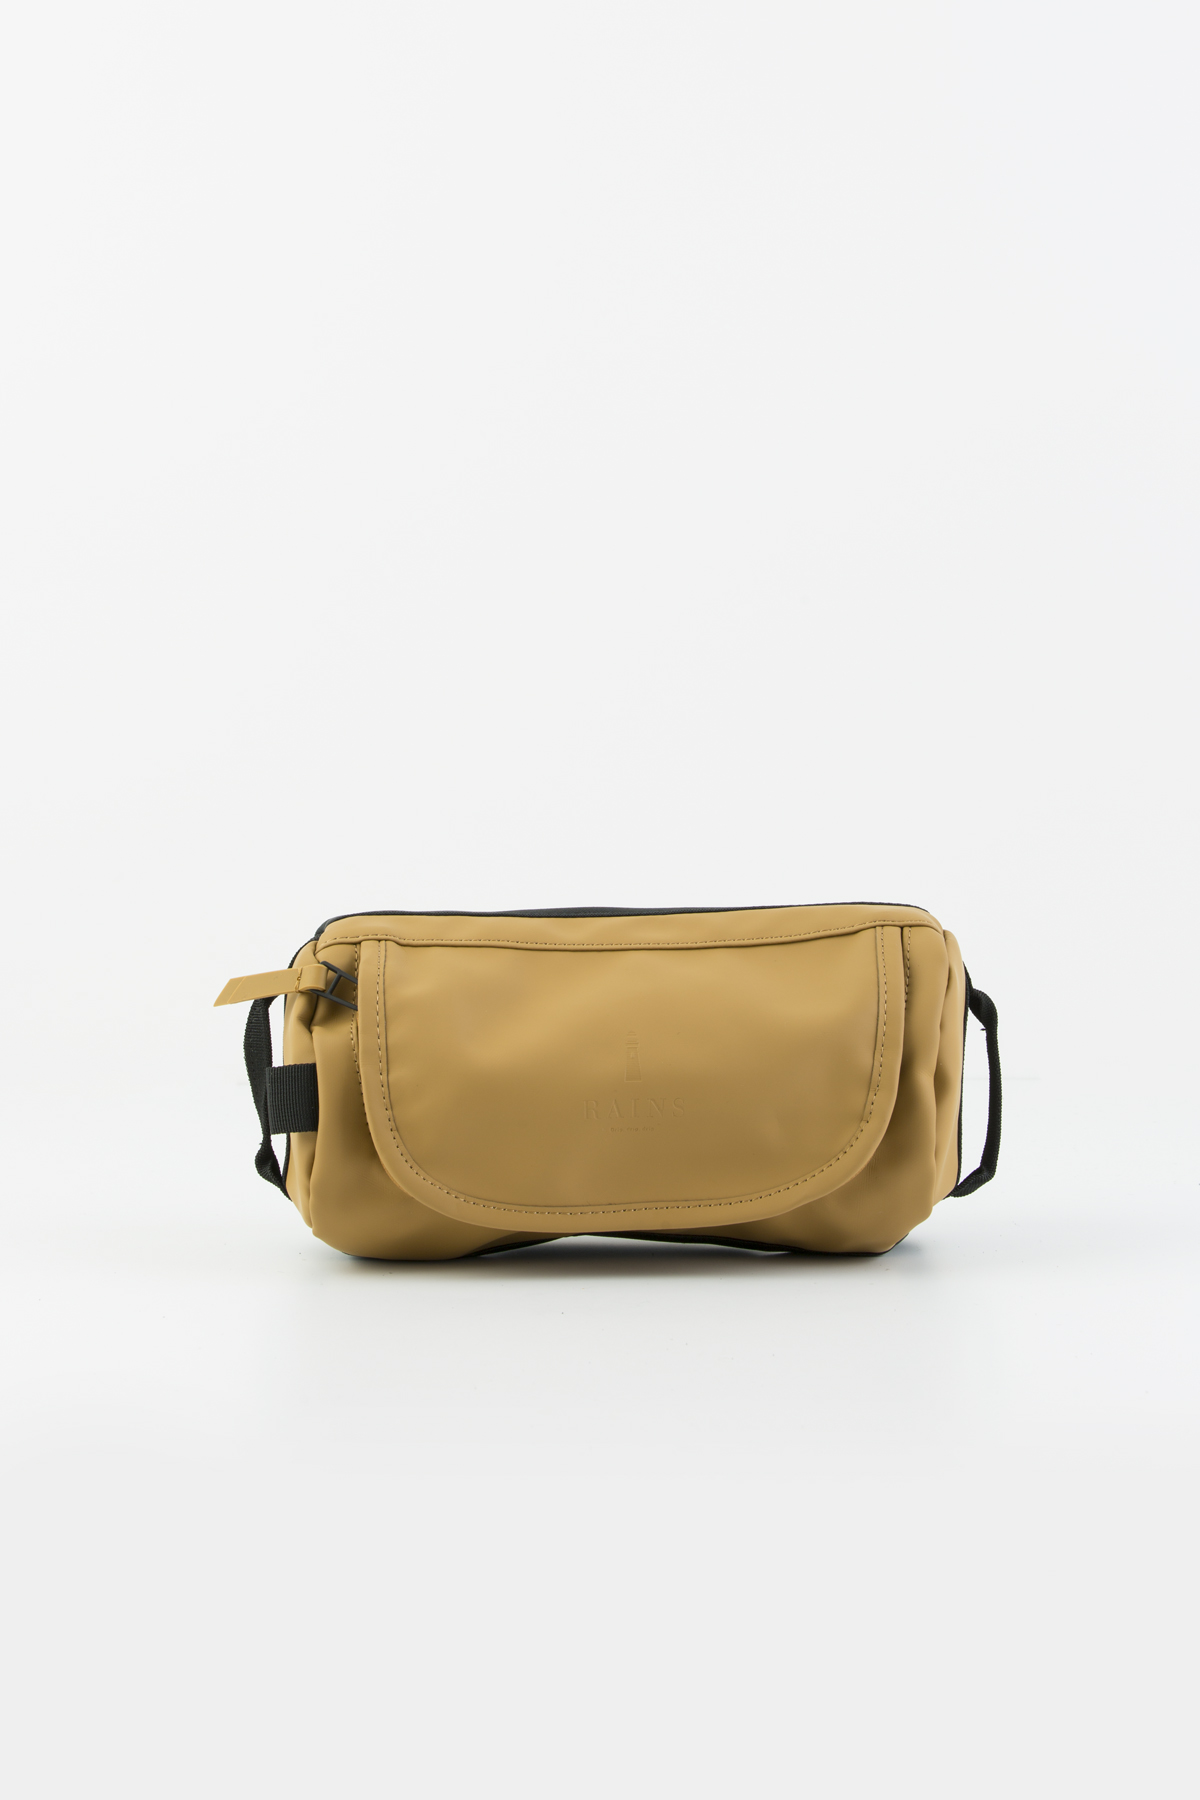 duffel-wash-bag-unisex-mustard-khaki-waterproof-rains-matchboxathens